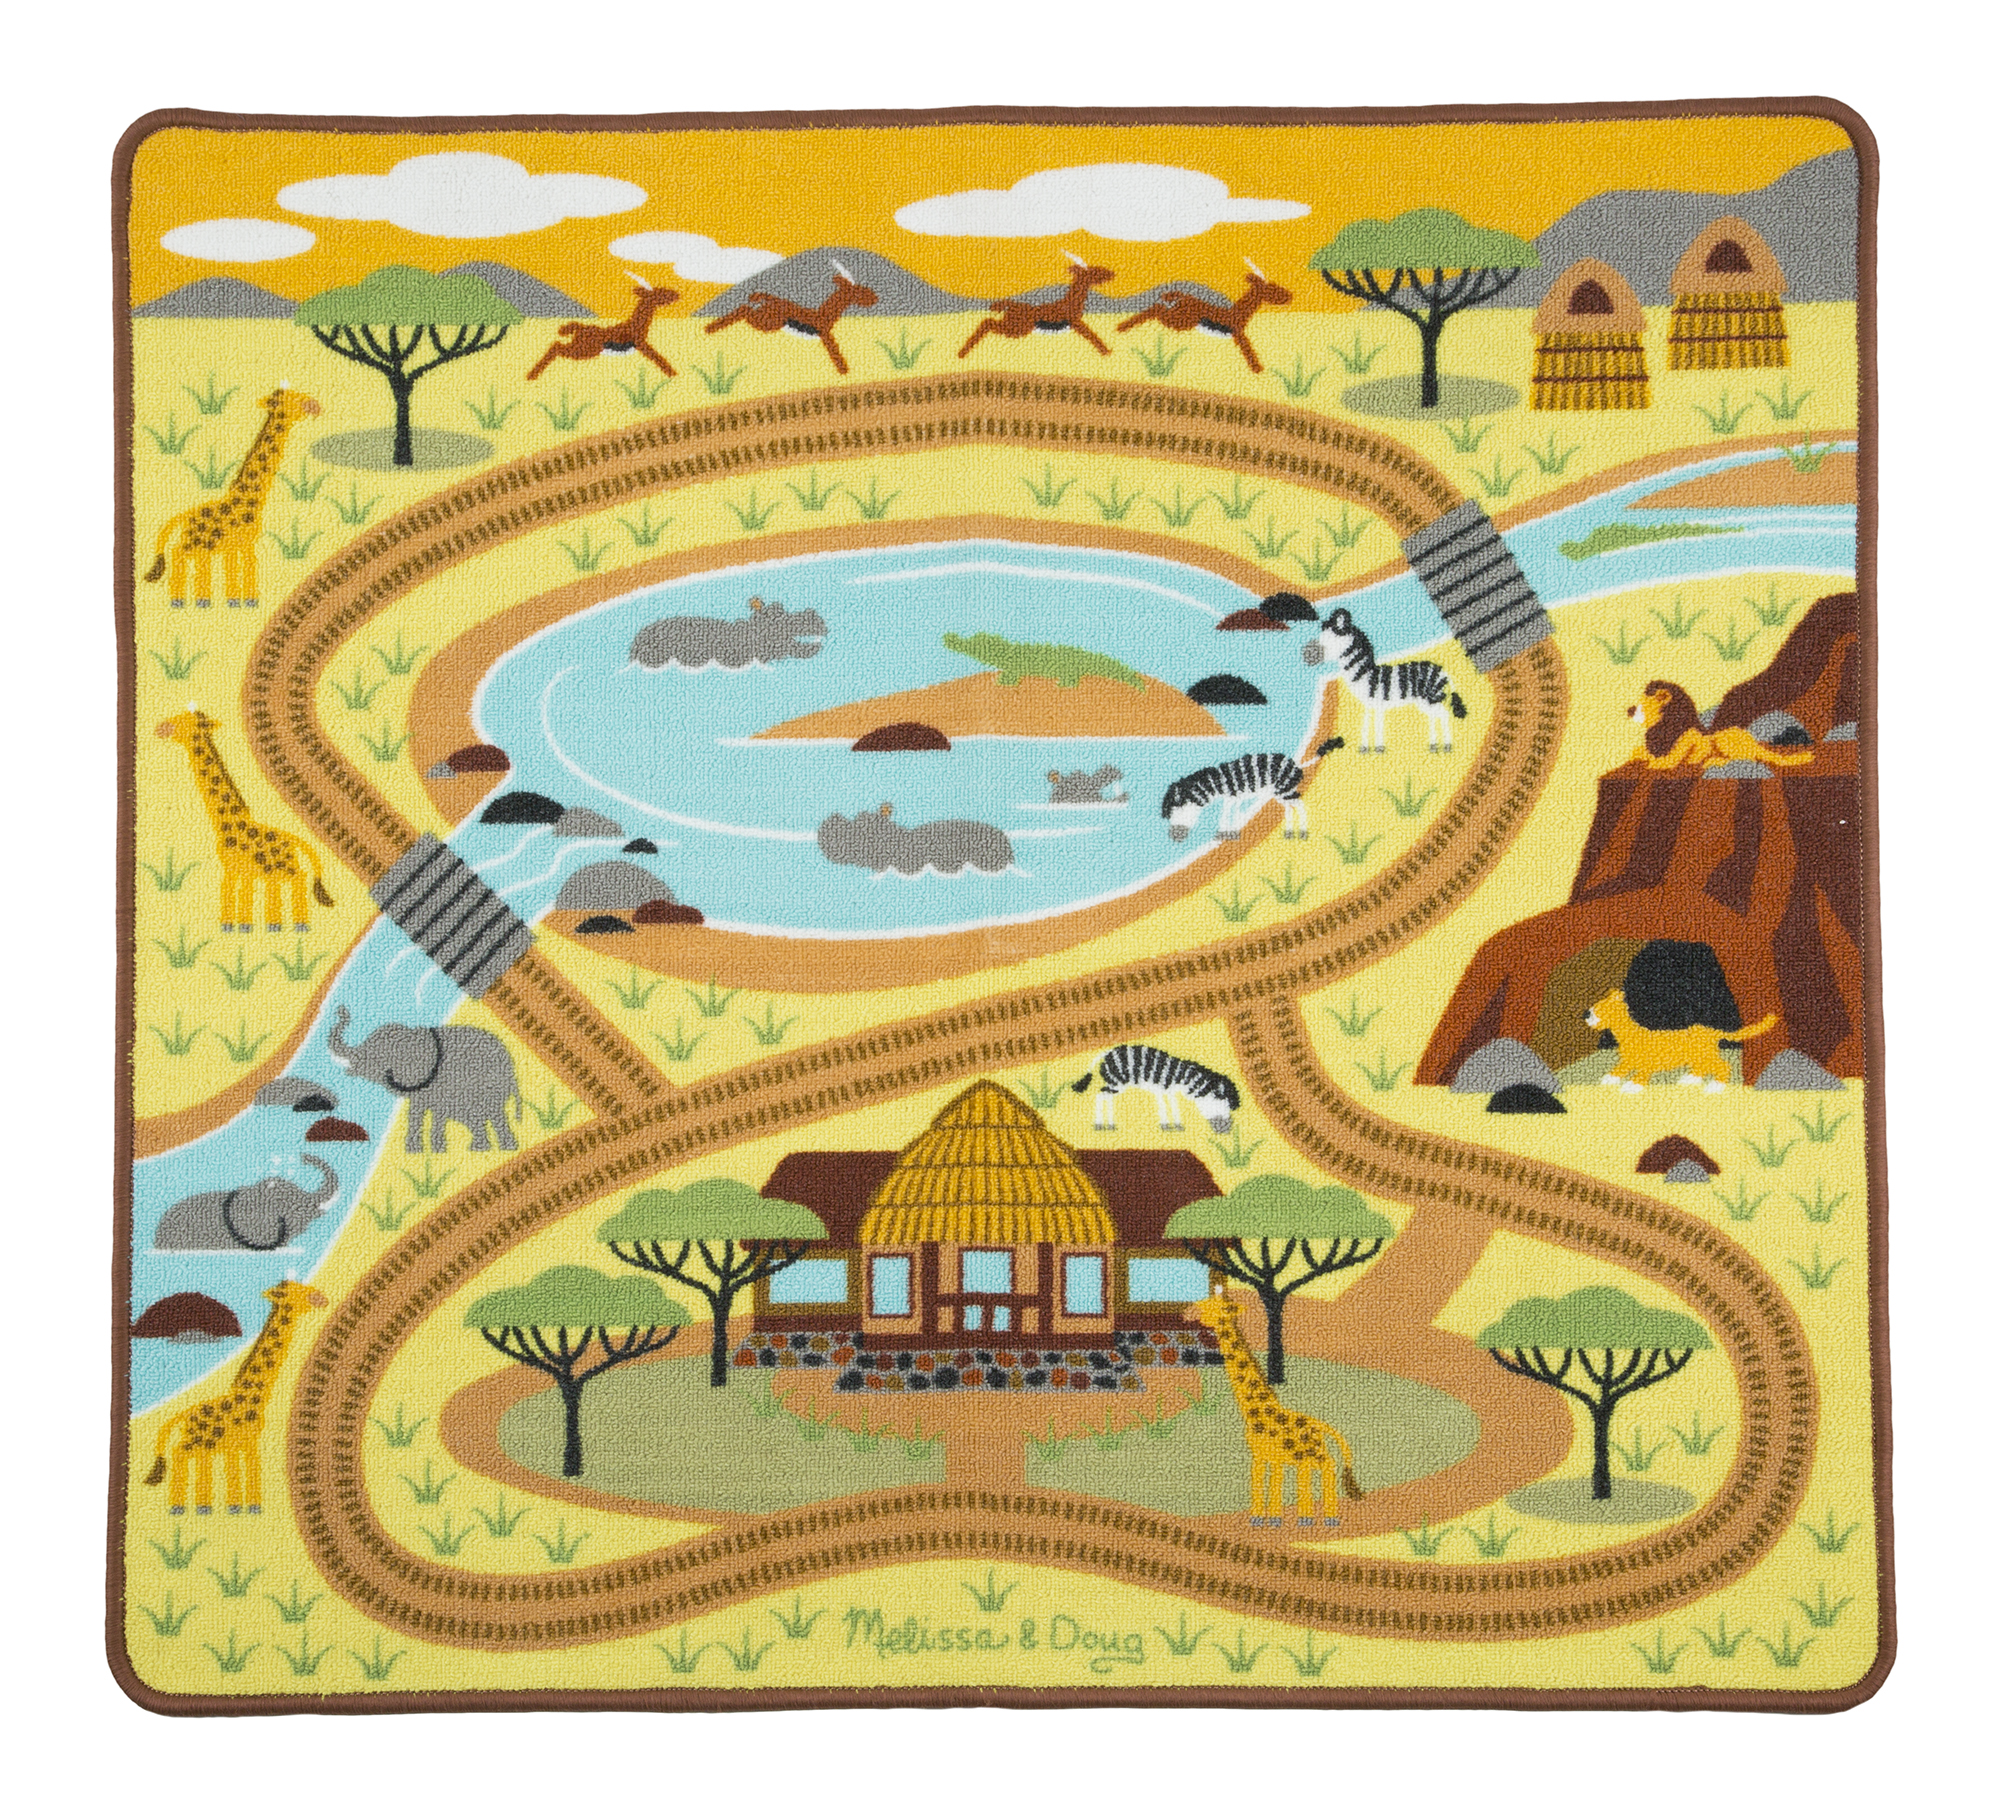 Around the Savanna Safari Rug